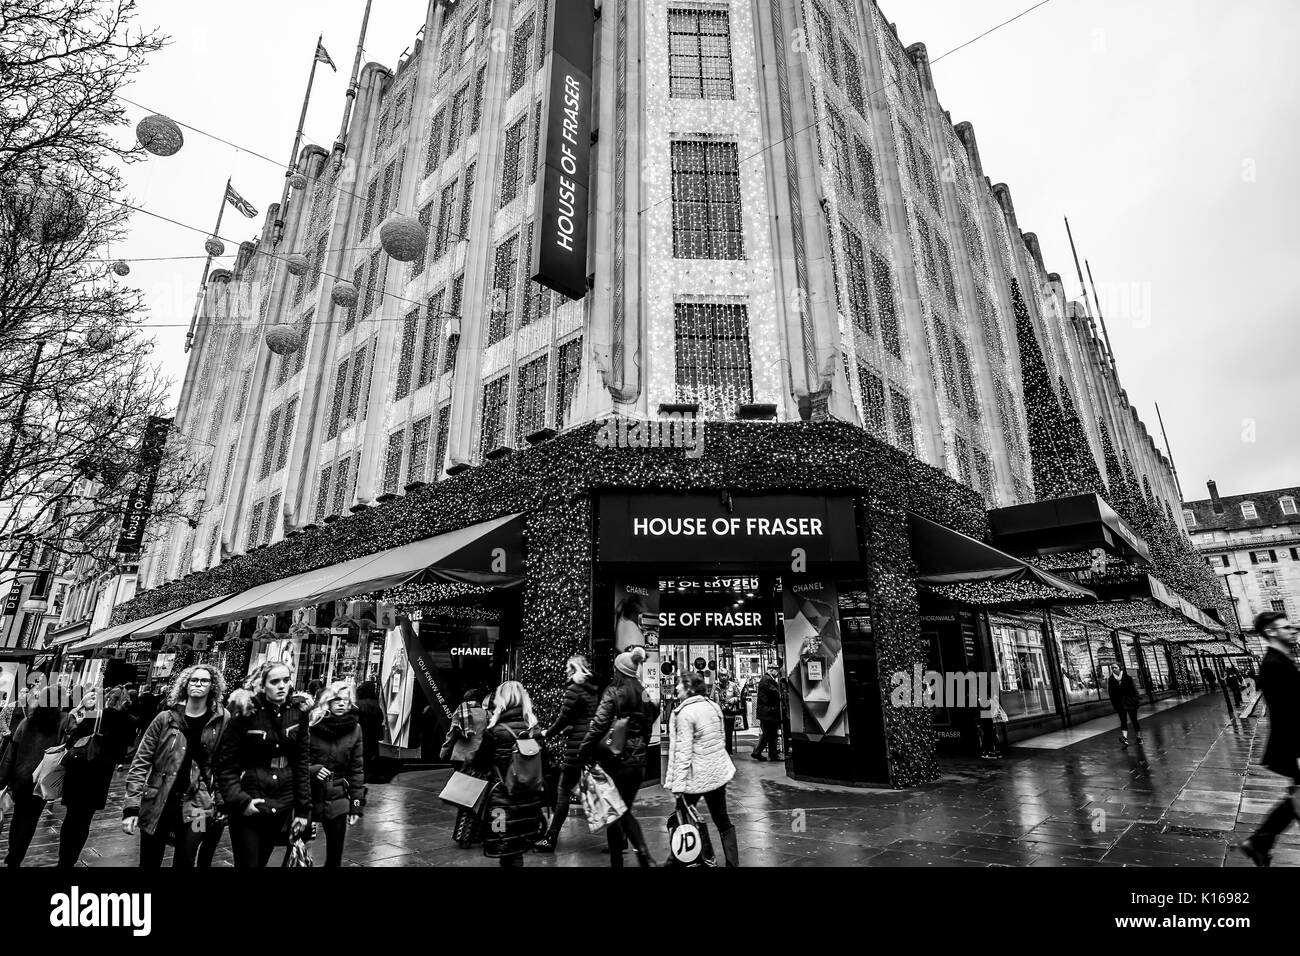 House of fraser oxford stock photos house of fraser for Housse of fraser